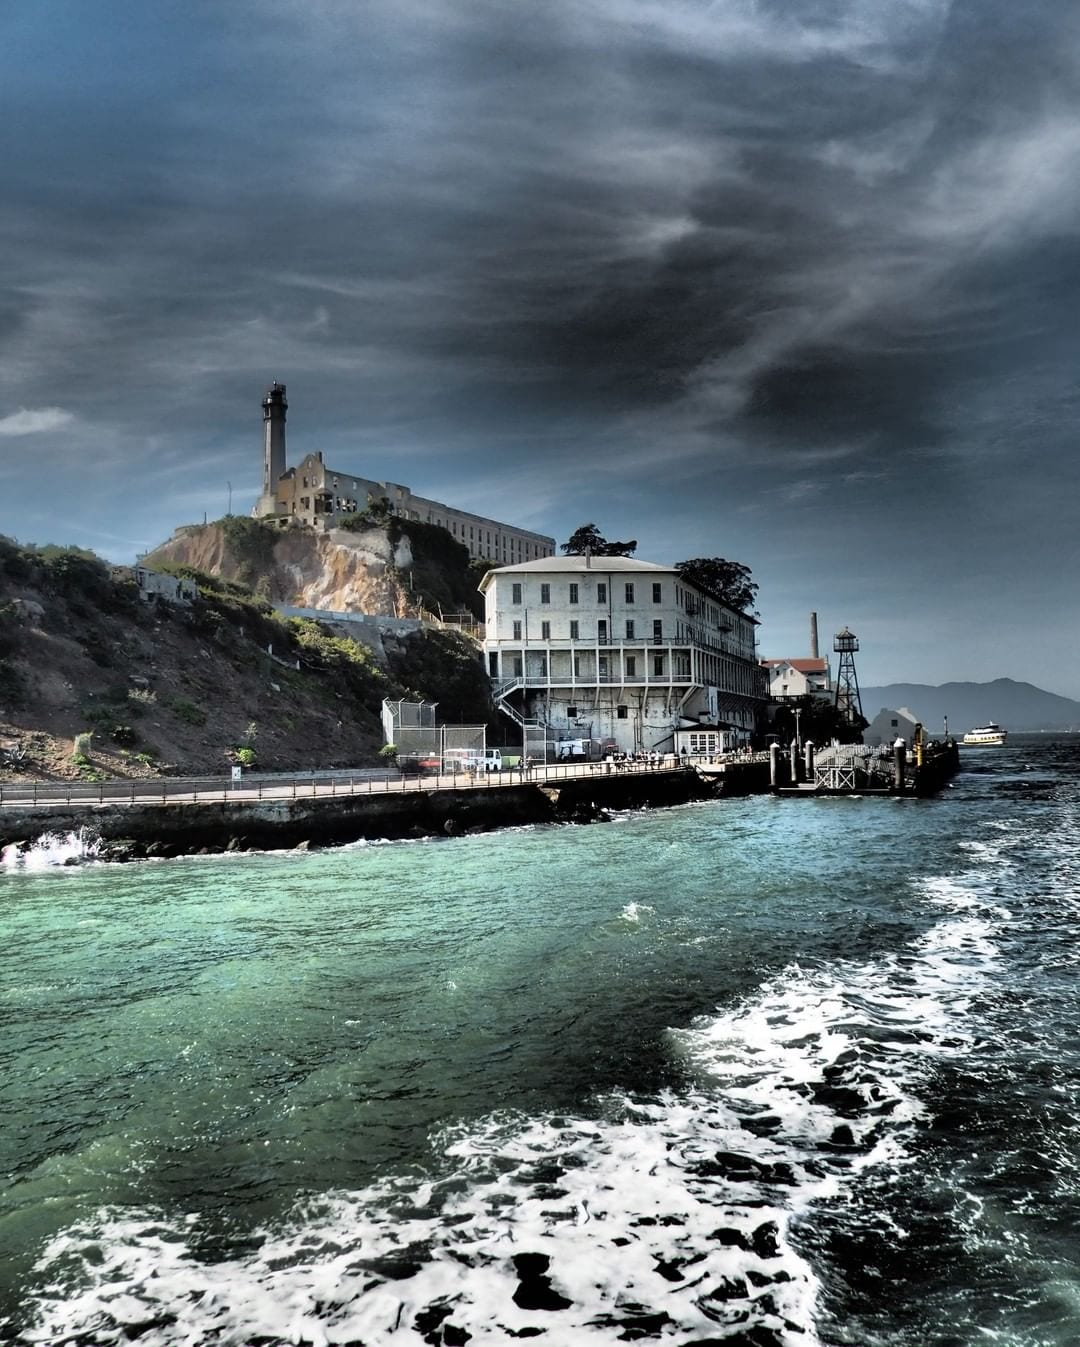 San Francisco is the place to be this Halloween! From 21+ yacht parties to ghost tours, there's always a treat for everyone. One of our favorites is the Alcatraz Night Tour where you head out at night on a ferry to visit one of the most ghostly spots in the city not far from the hotel.